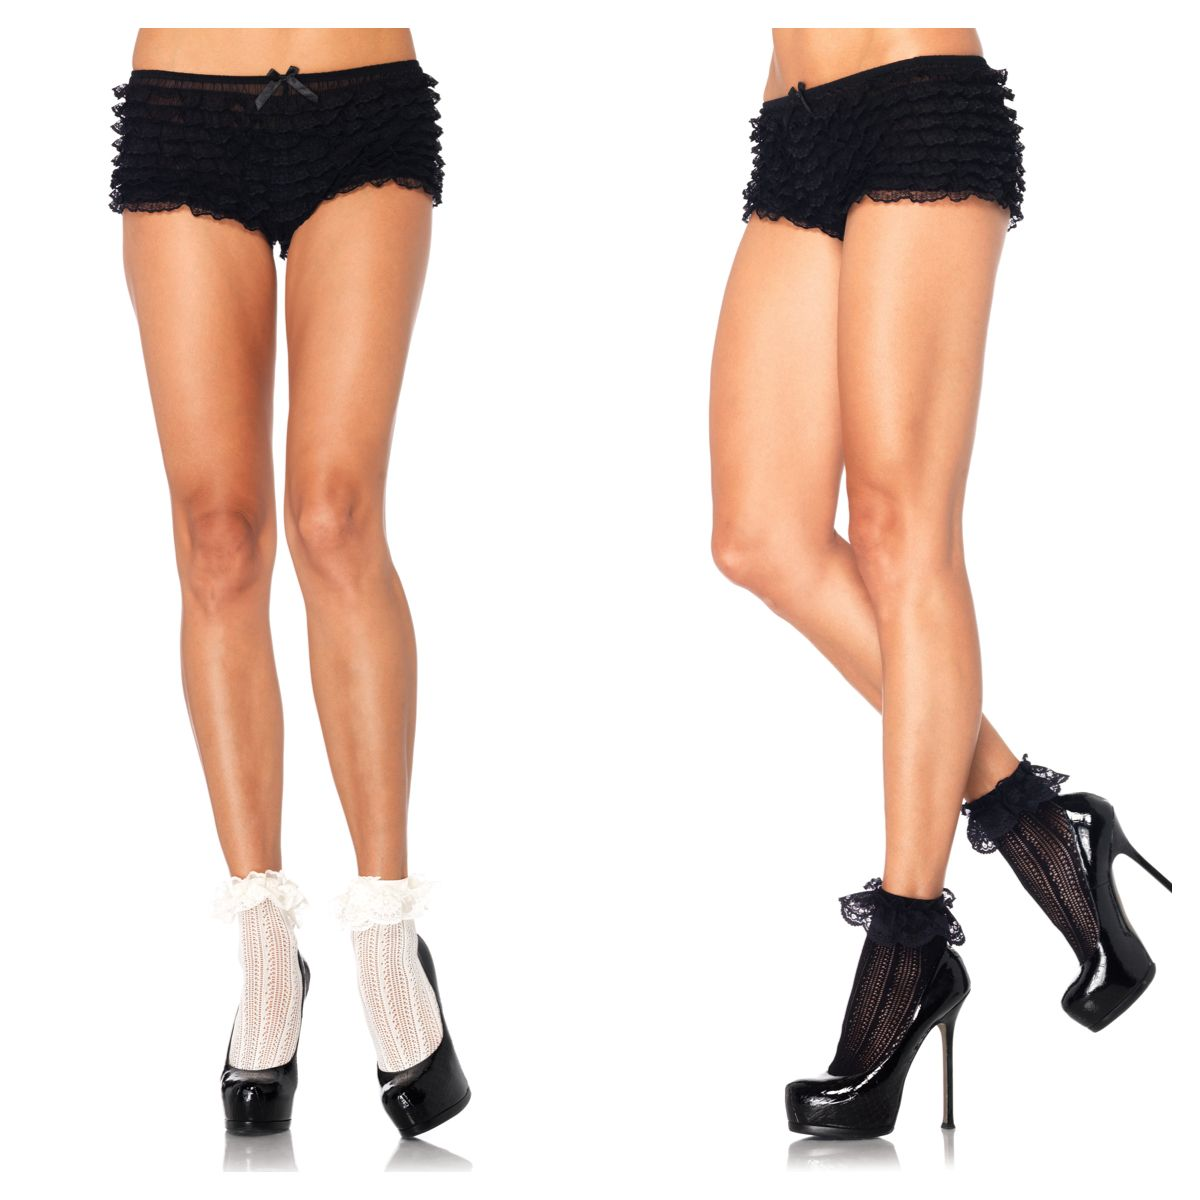 Be flirty in our crochet net lace top anklets. style 3031 www.legavenue.com